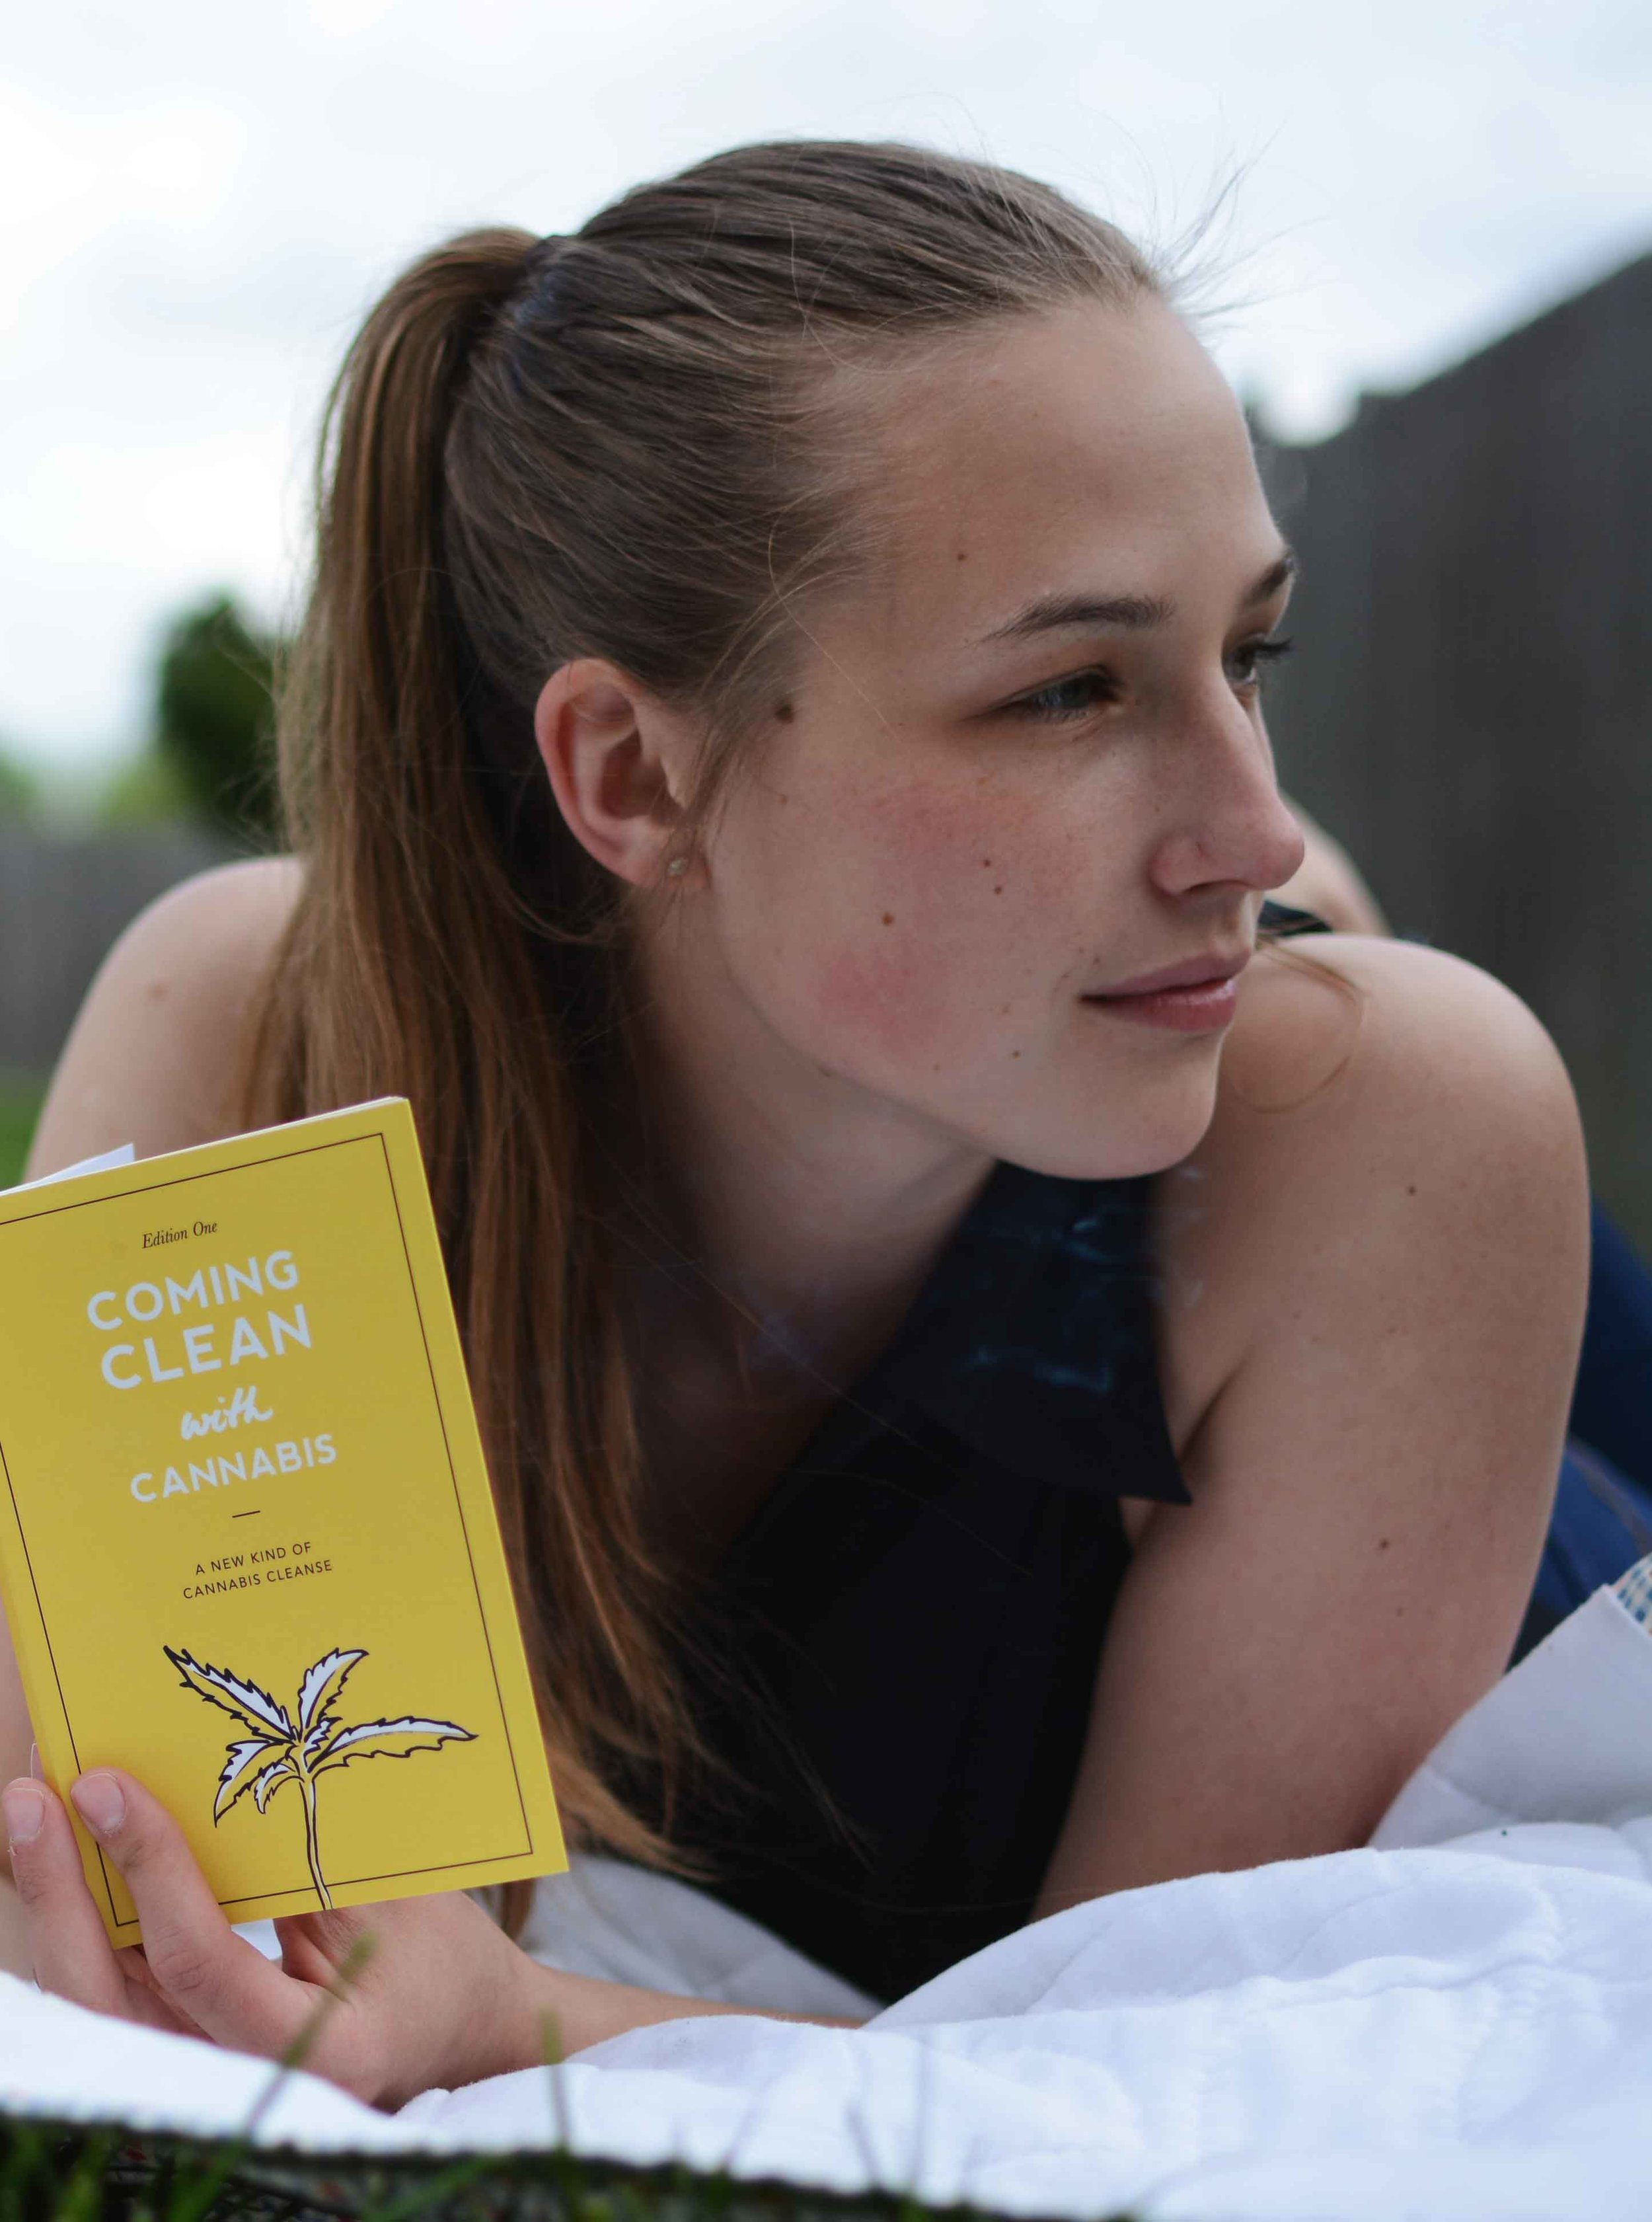 kira-author-of-the-cannabis-cleanse-kristen-williams-designs